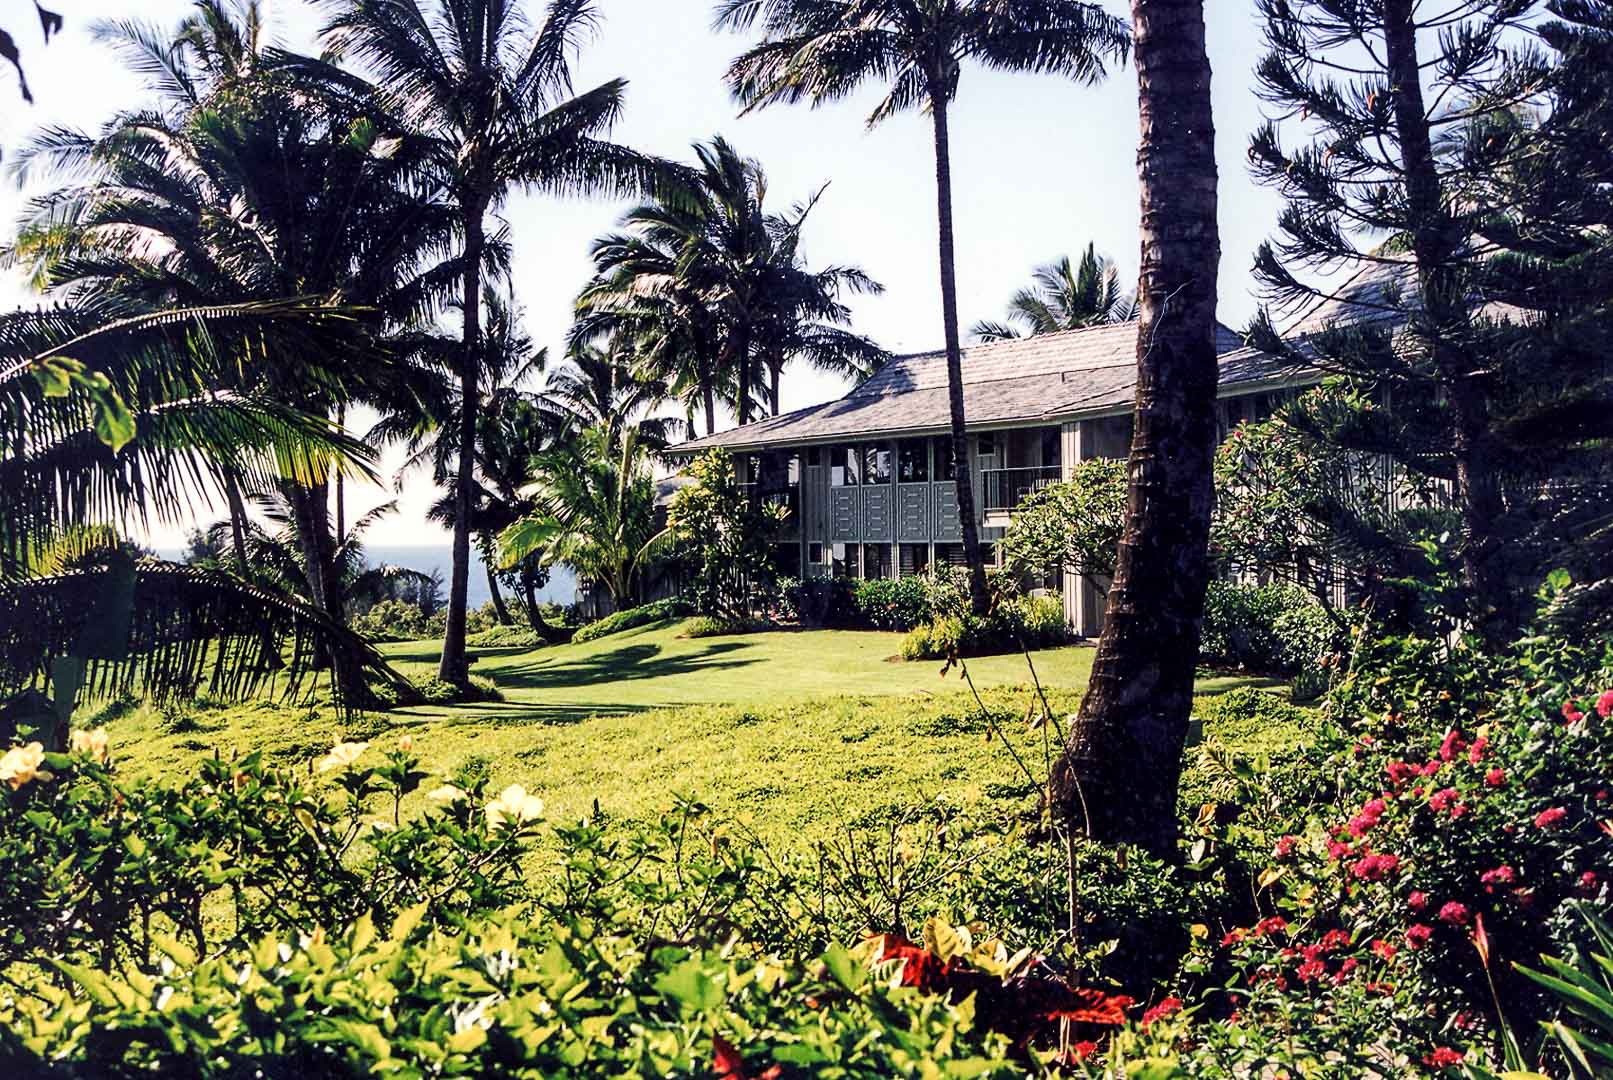 The colorful landscape at VRI's Alii Kai Resort in Hawaii